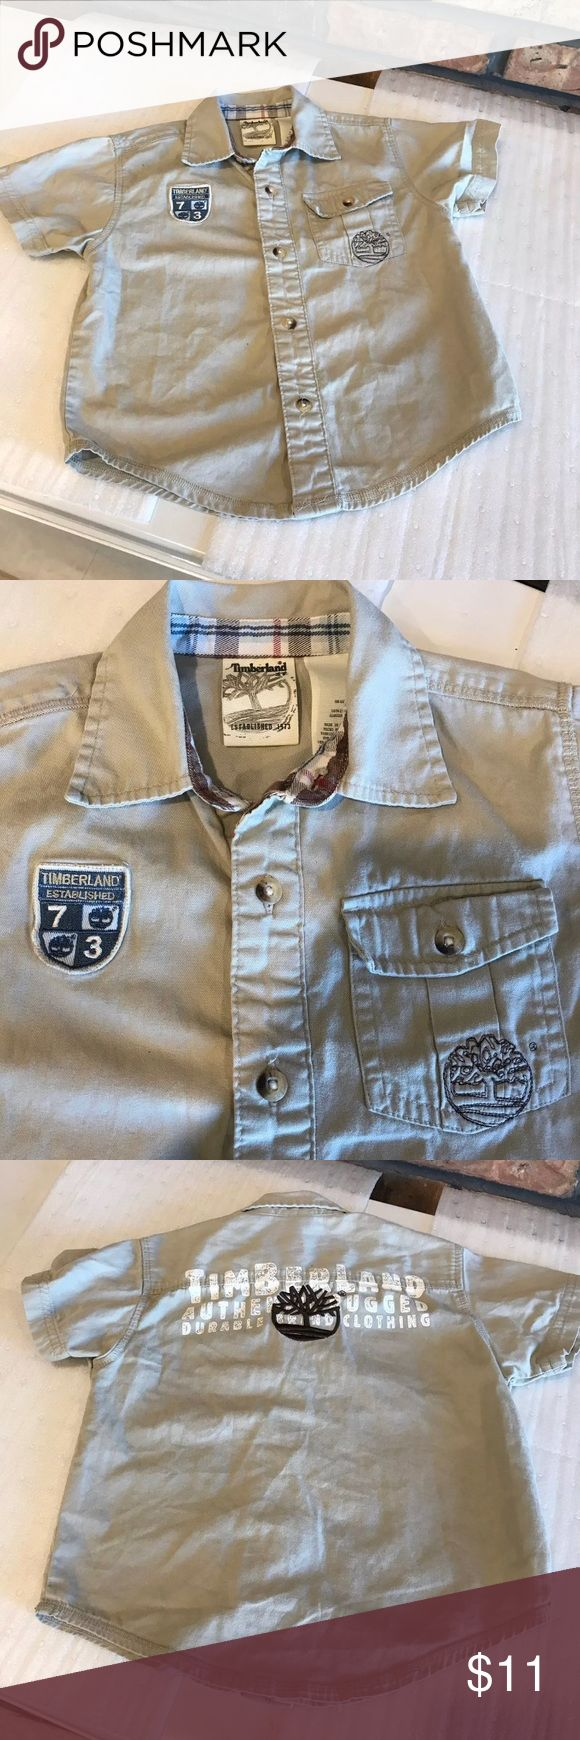 Timberland Boys Shirt Polo By Ralph Lauren Boys Shirt Size: 3T Color: Khaki  Condition: Pre-owned, lightly worn, no stains or rips Timberland Shirts & Tops Button Down Shirts